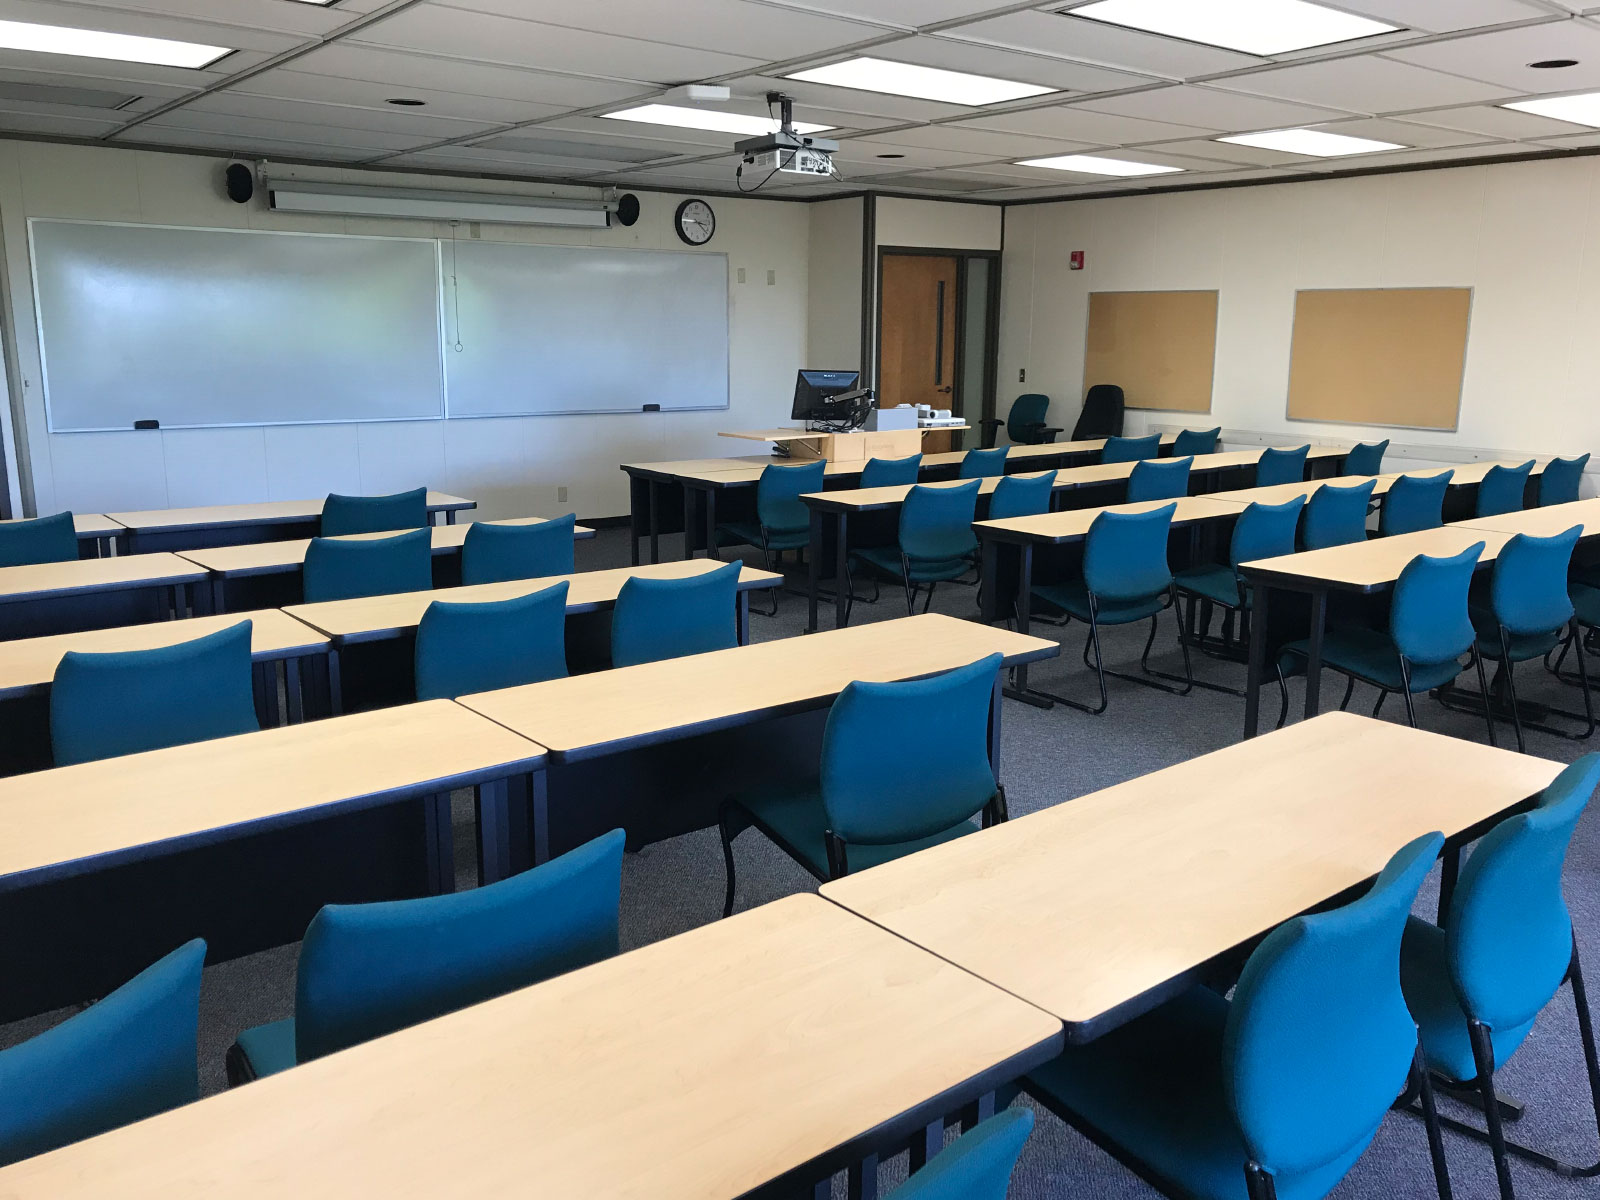 Rows of tables with blue chairs in a classroom with a large whiteboard and projector